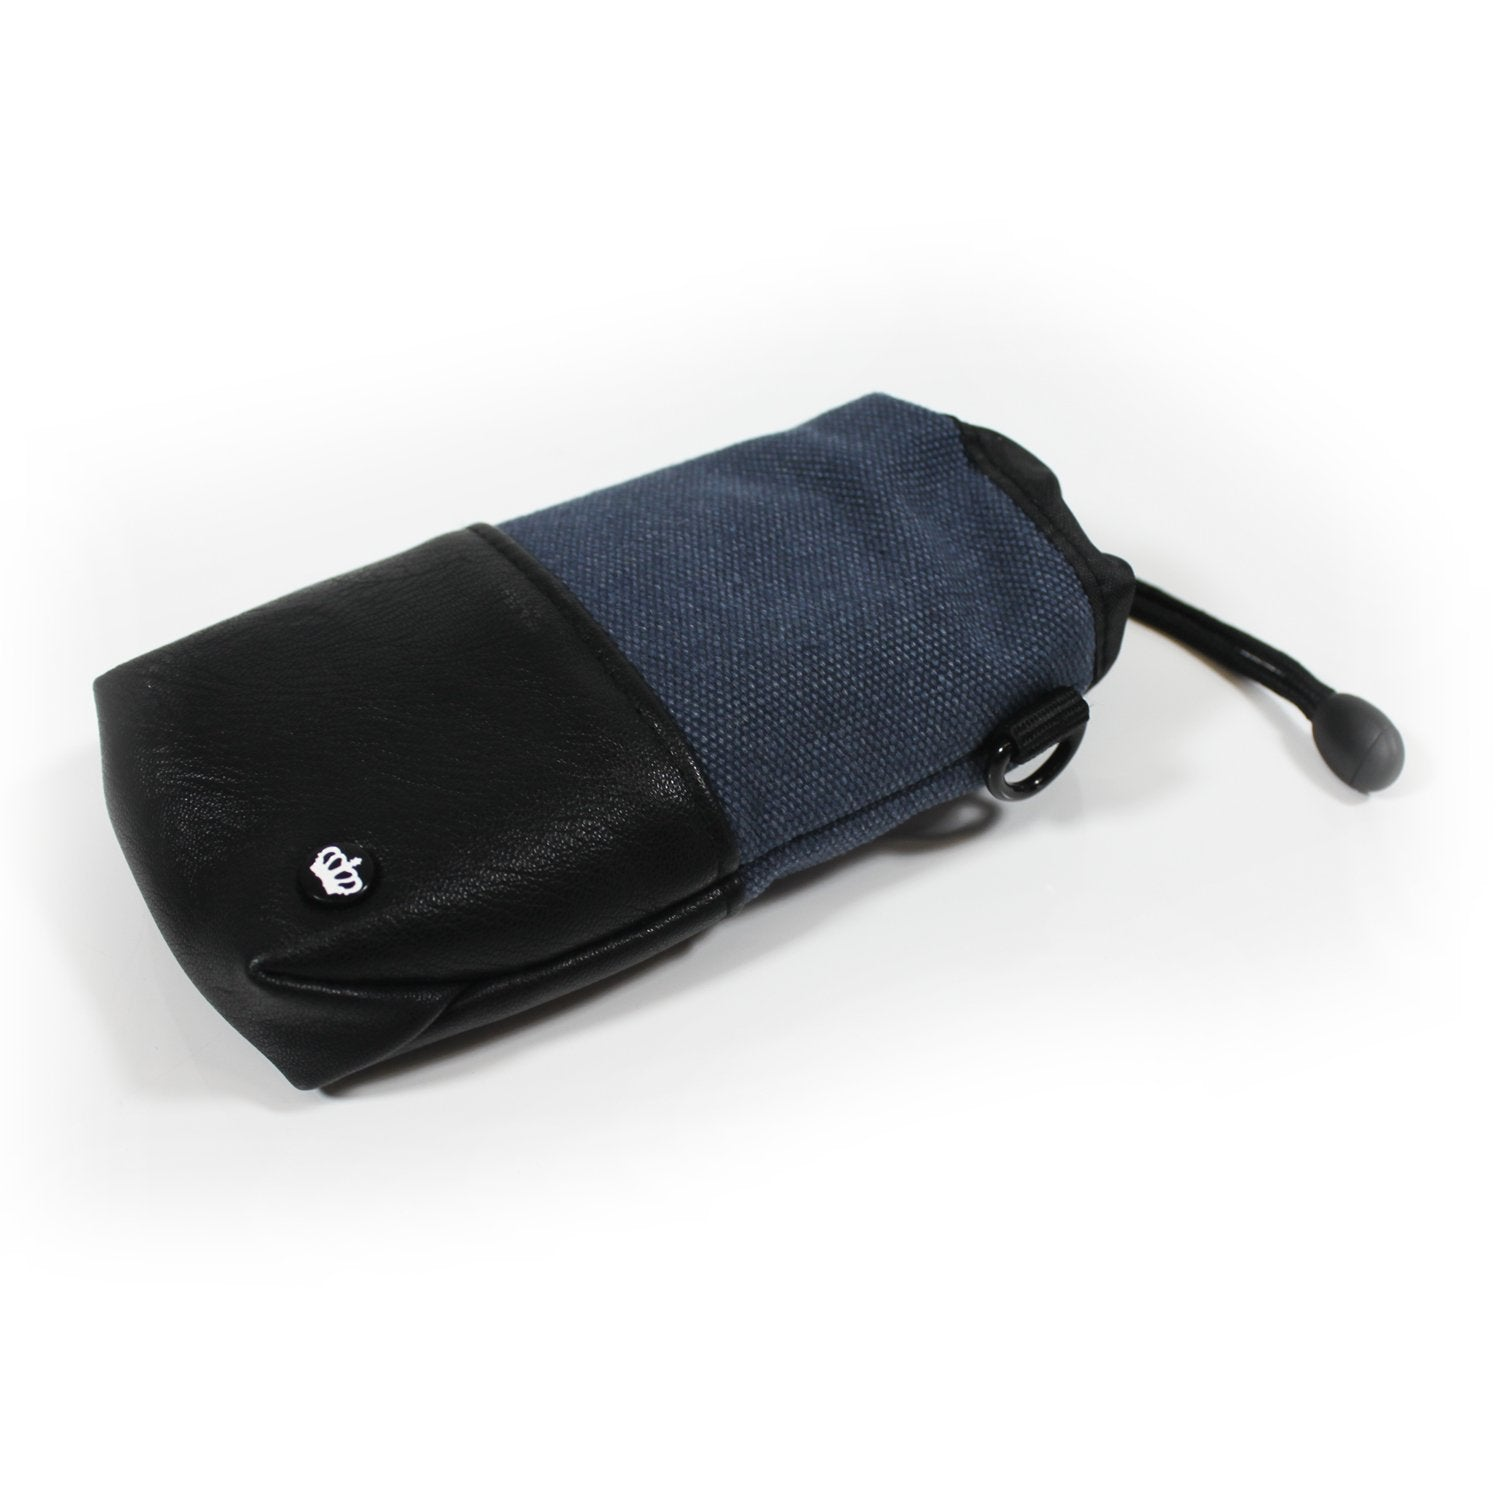 THE MULLET - PERSONAL ESSENTIALS CASE